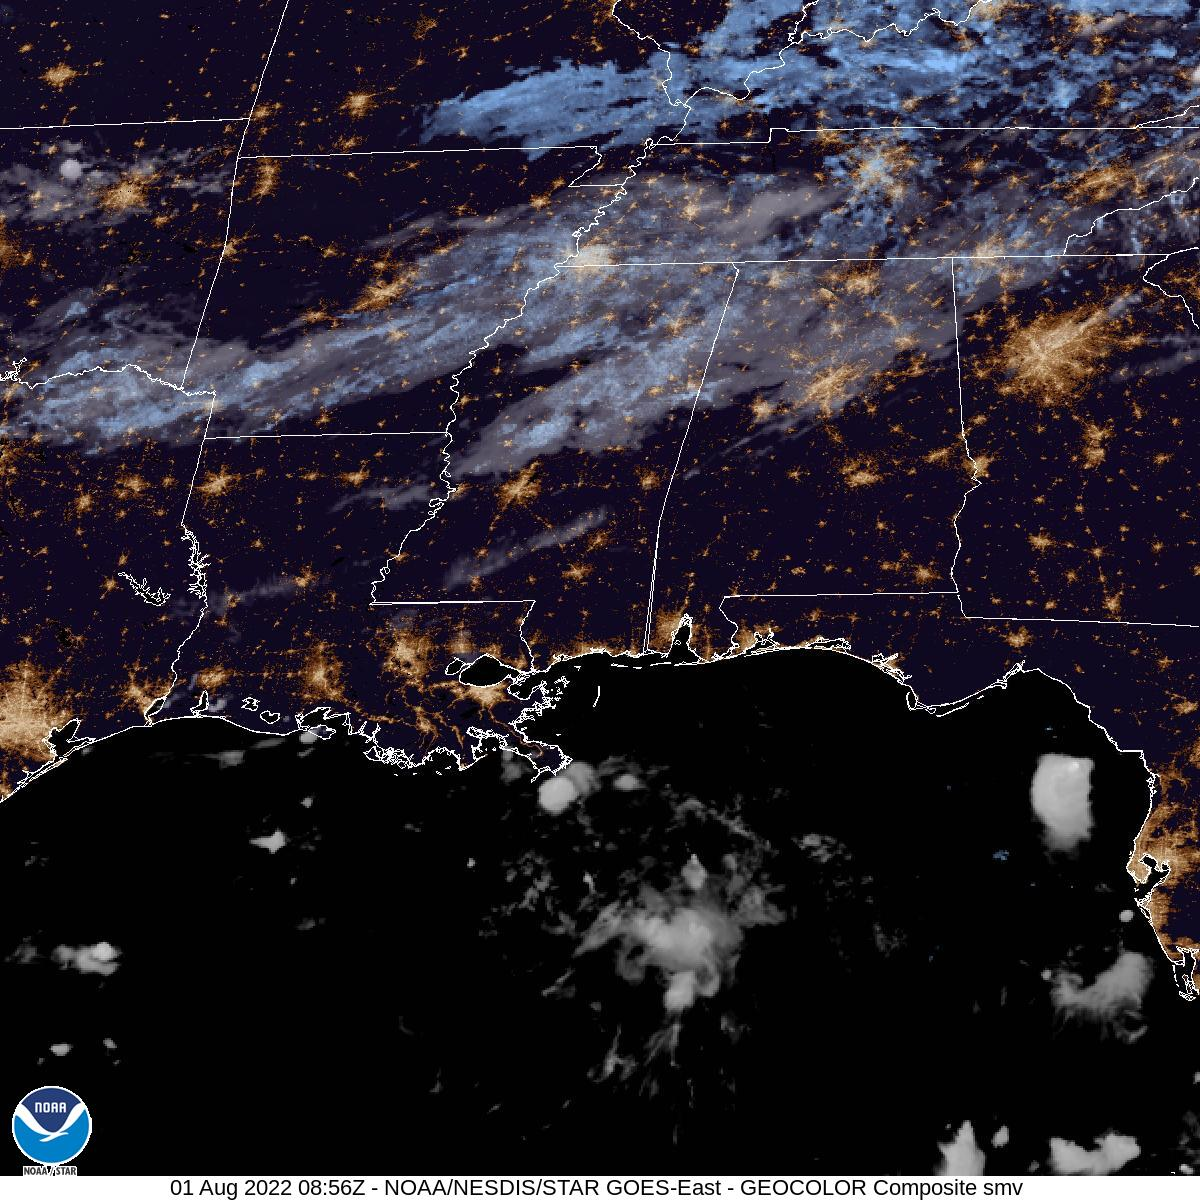 Latest GOES-16 Geocolor Image of Southern Mississippi Valley sector